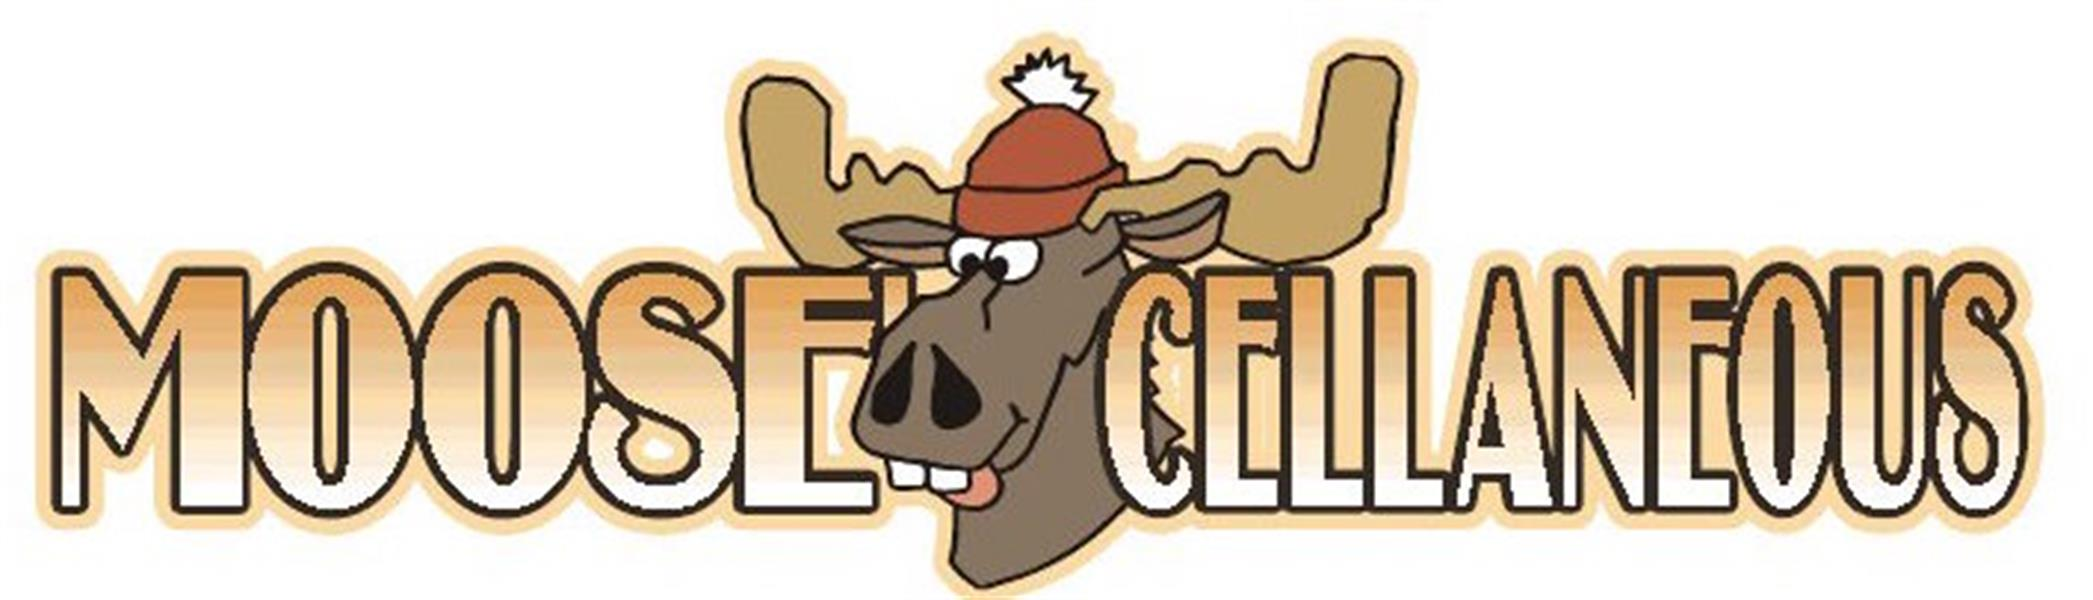 Moose-cellaneous Gifts